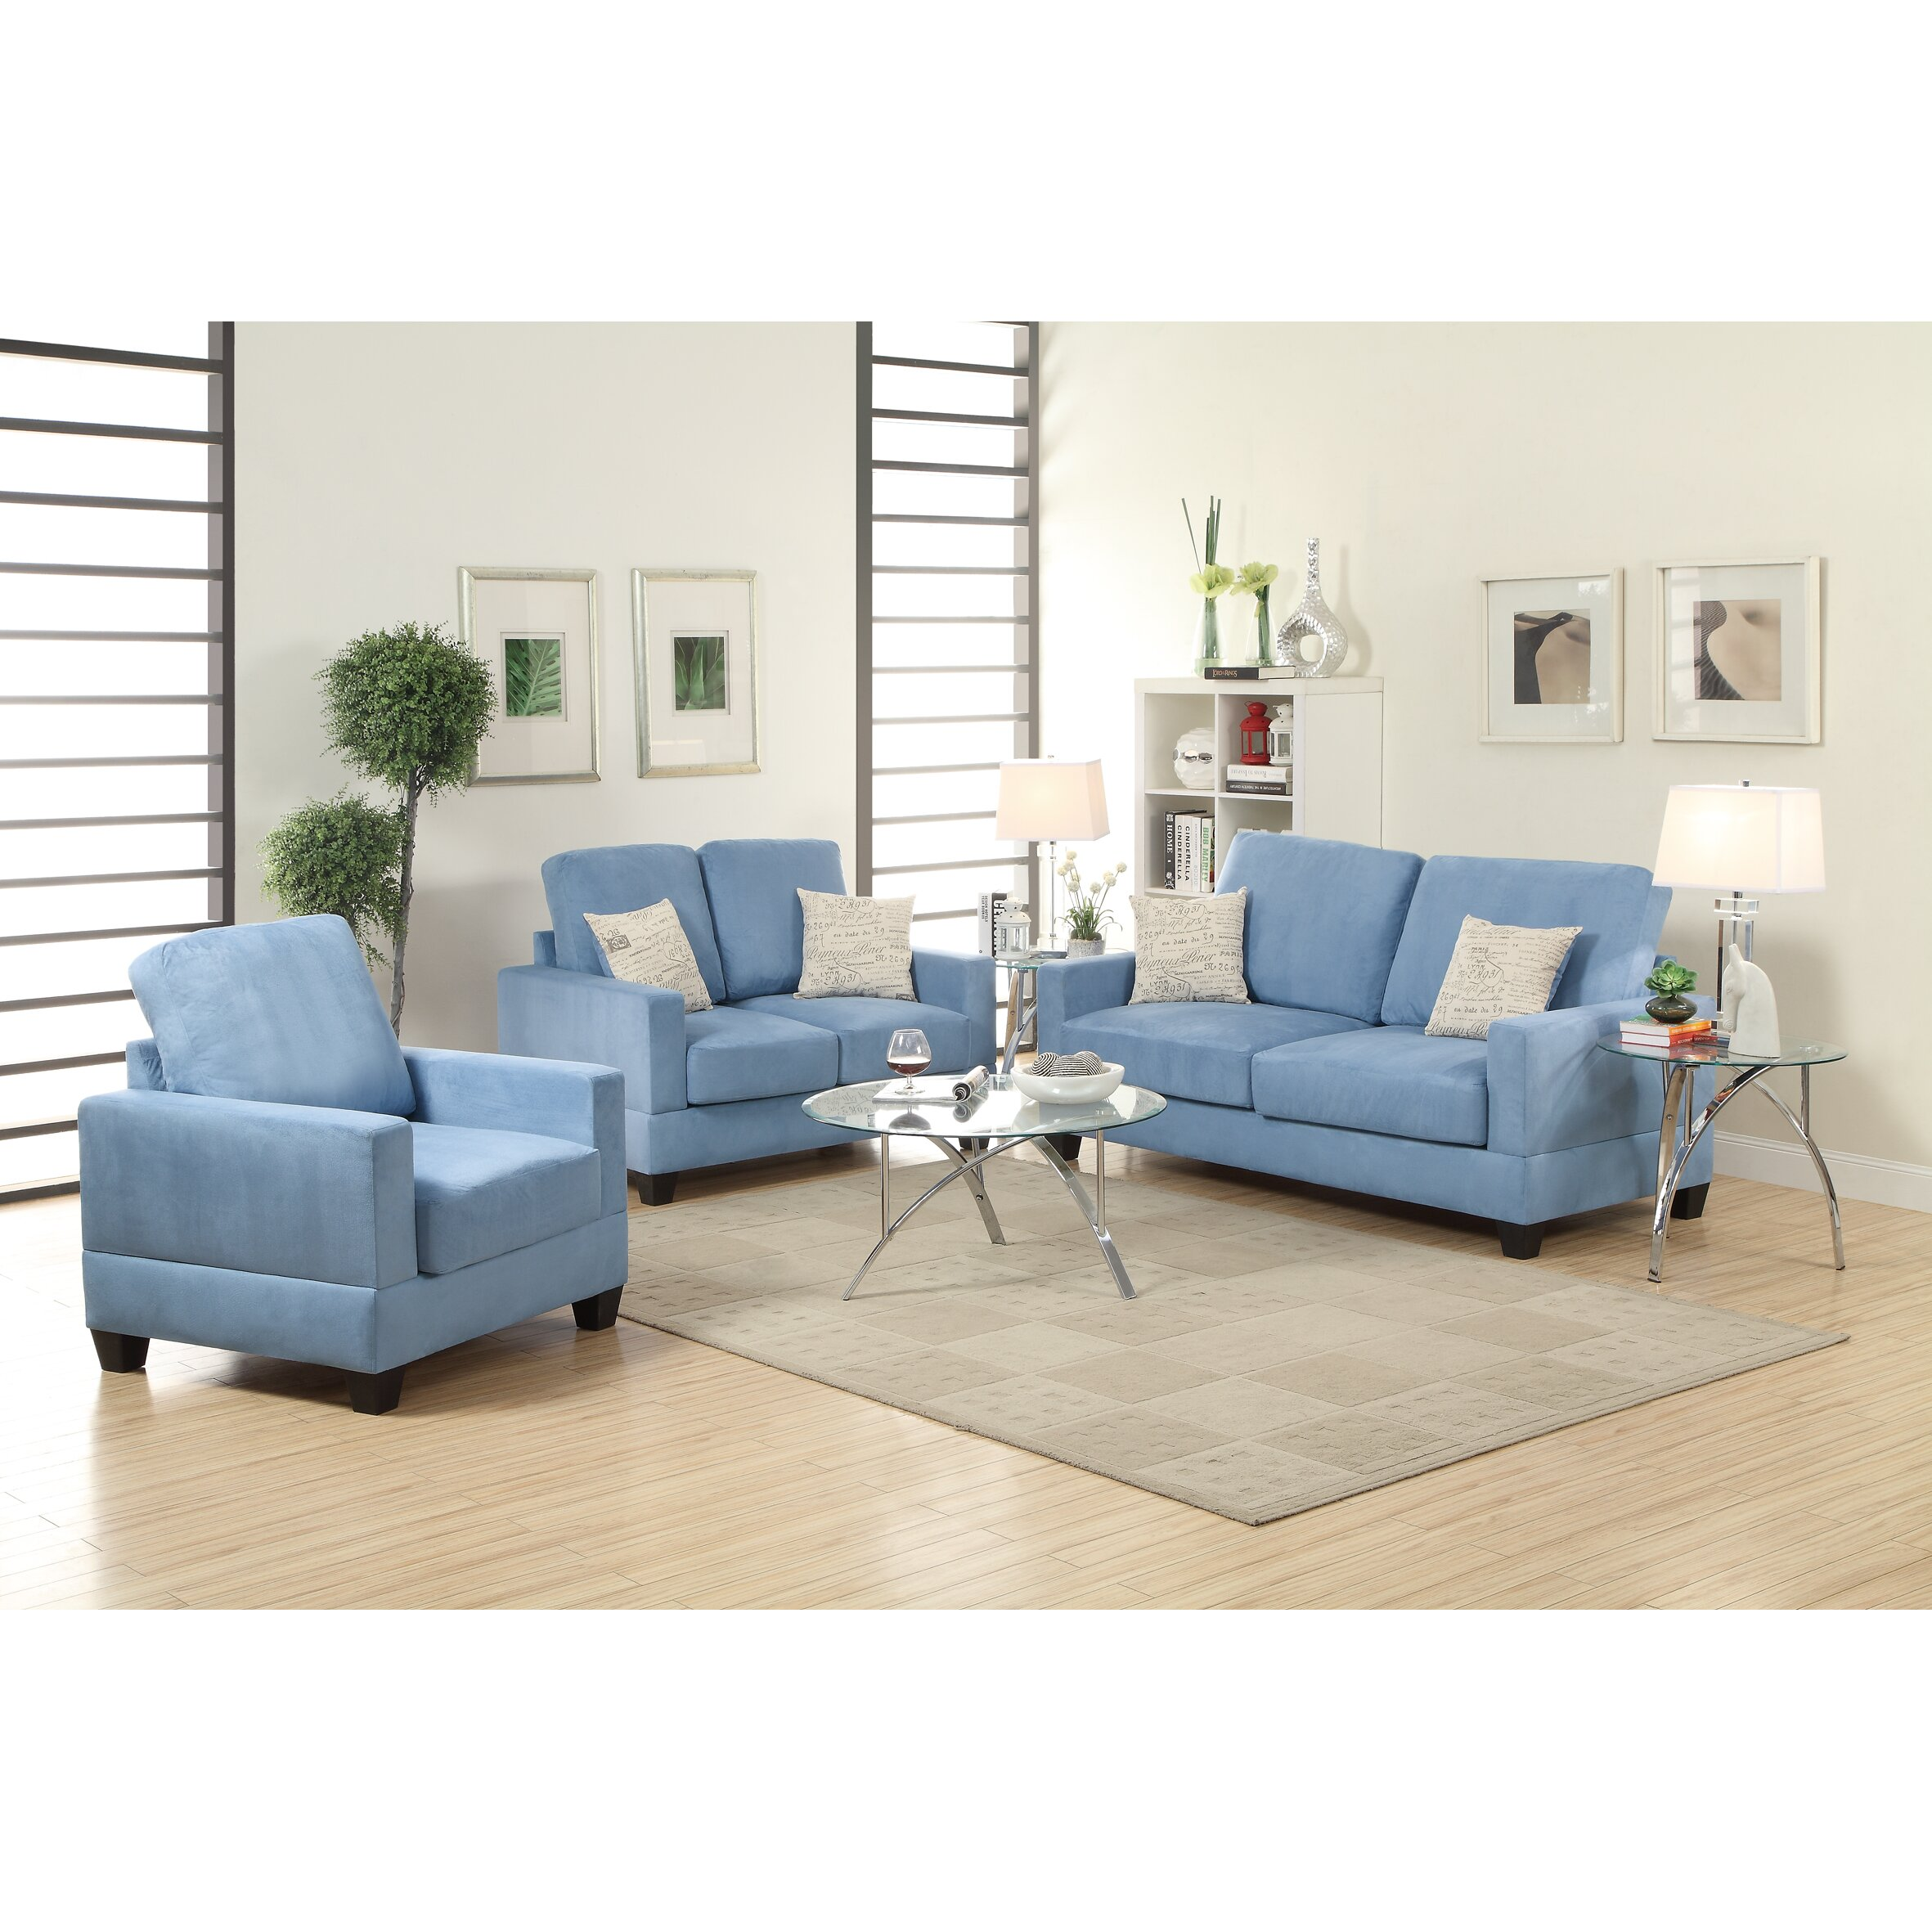 madison 3 piece sofa and loveseat with chair set reviews wayfair